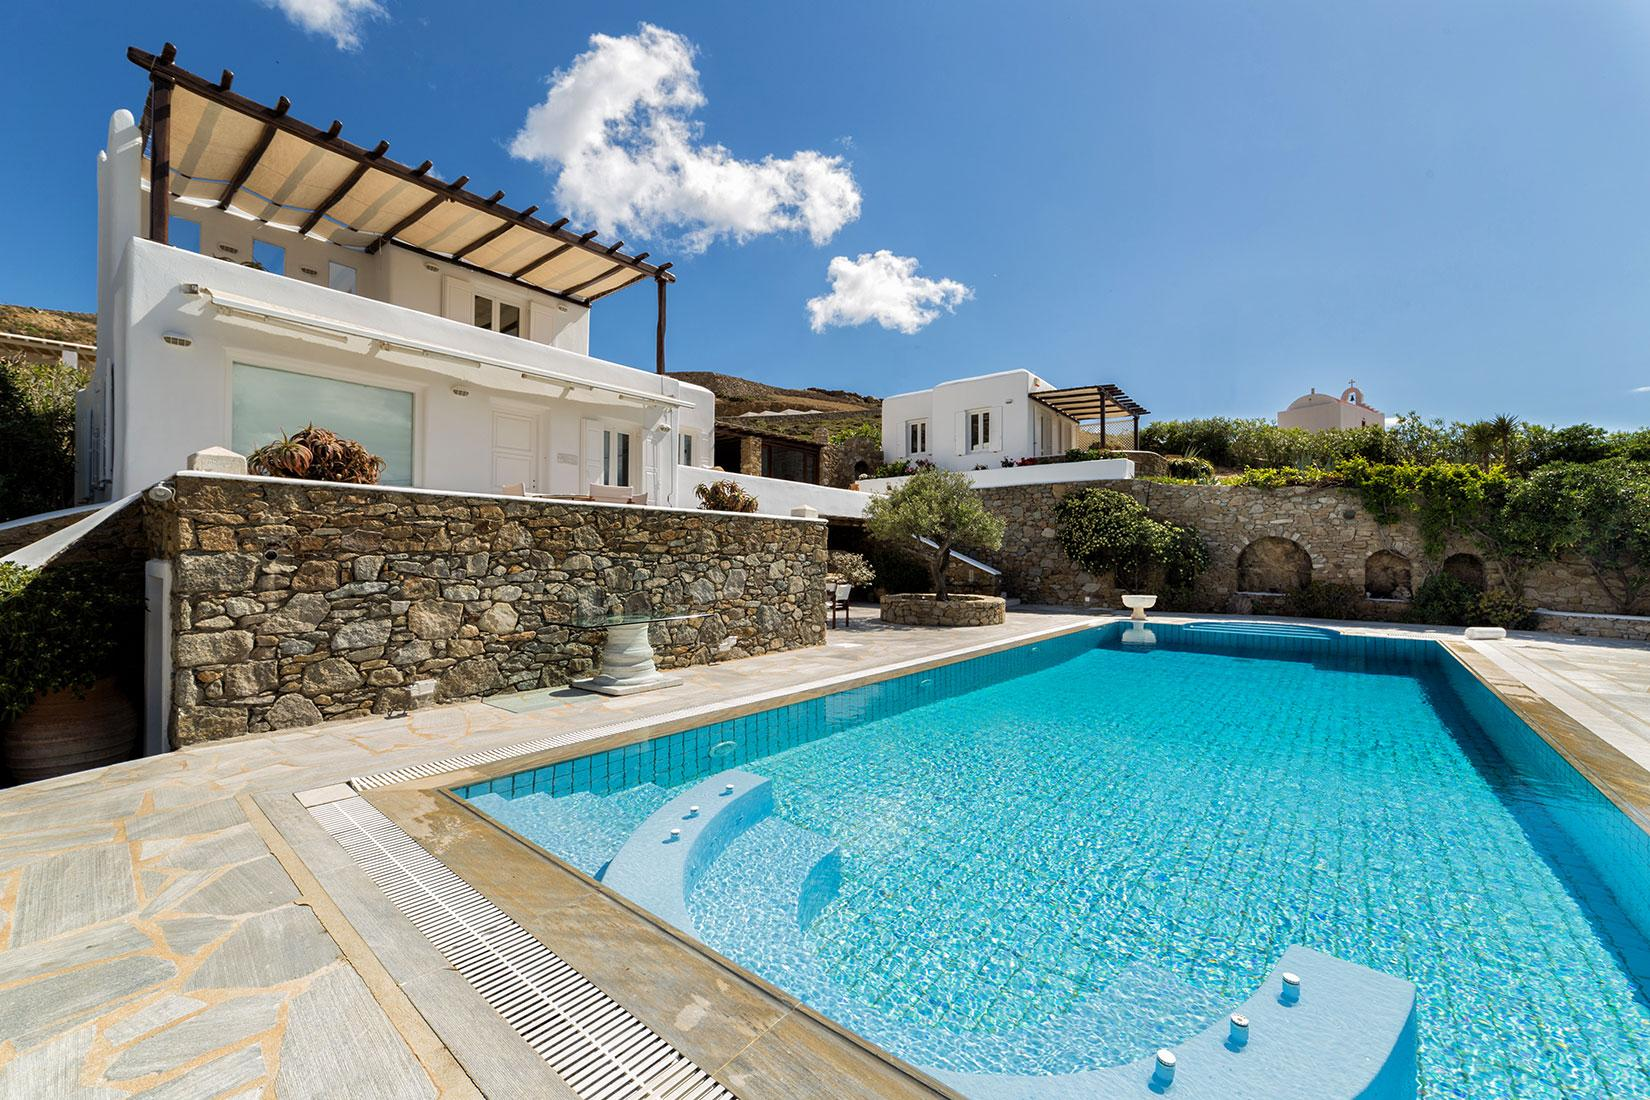 Apartment The Galaxy Mykonos villa with large pool and yoga platform photo 6005341